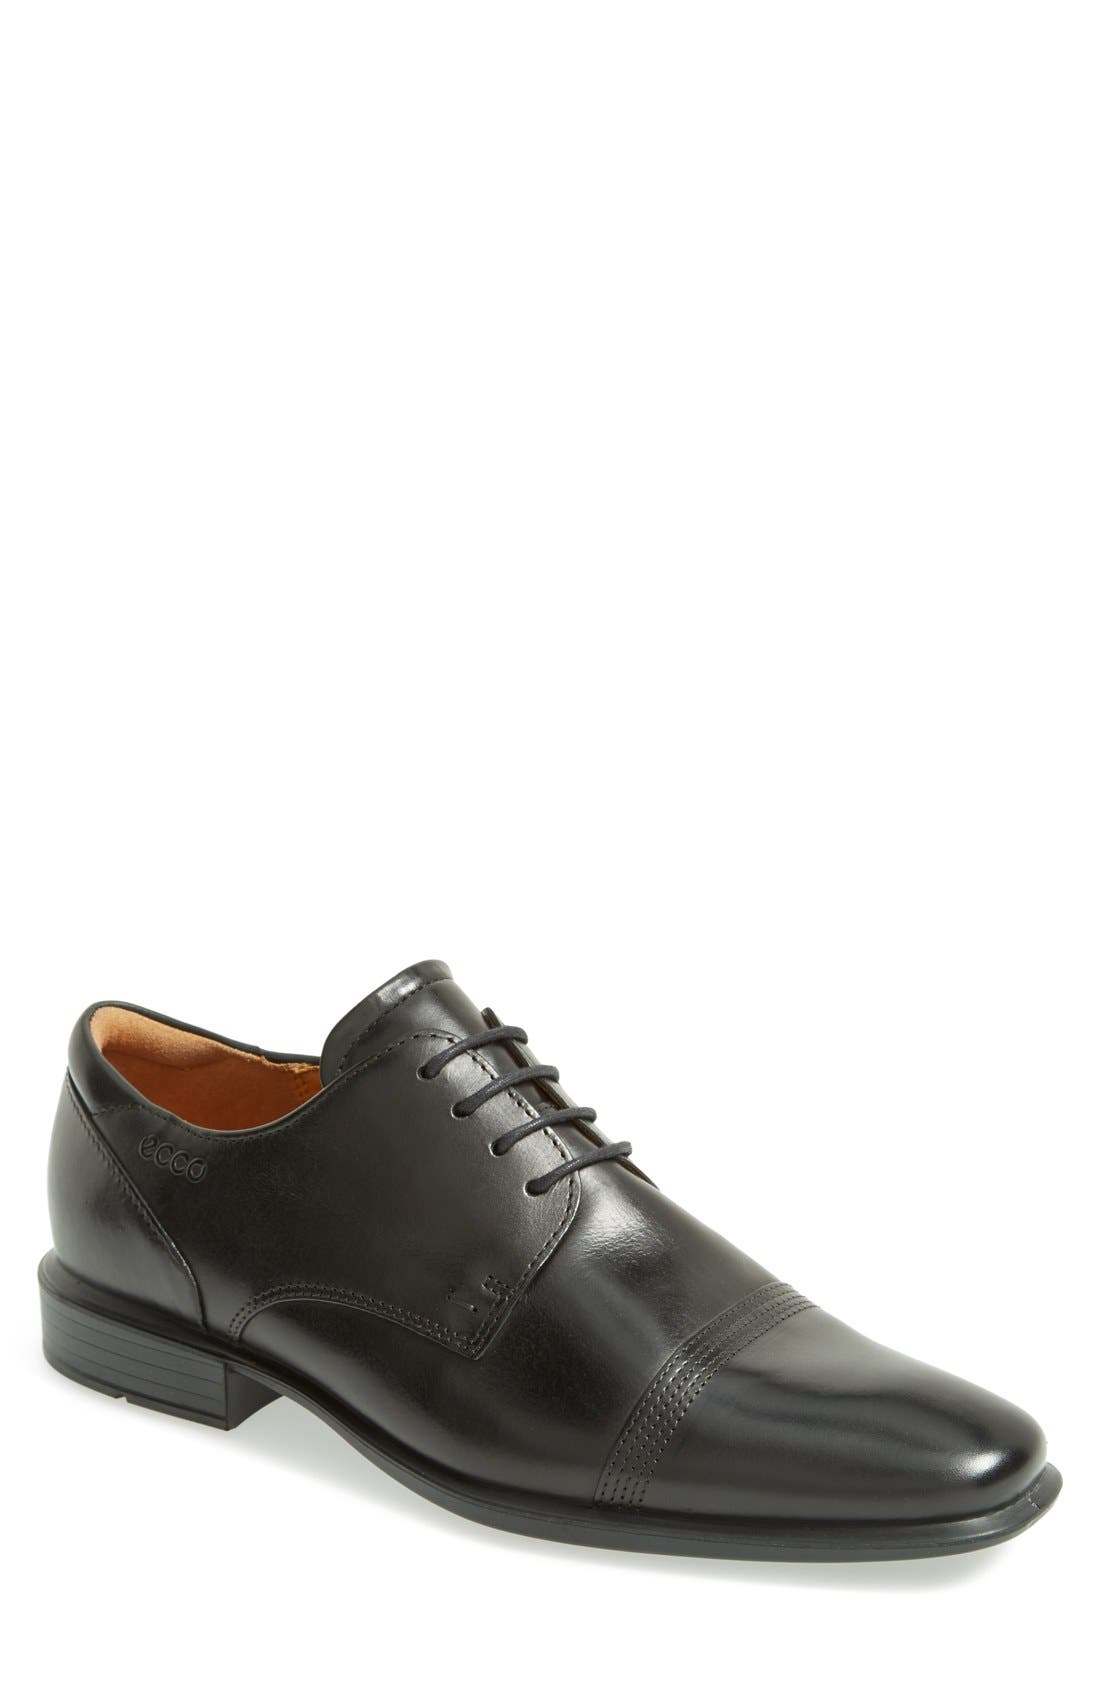 Alternate Image 1 Selected - ECCO 'Cairo' Cap Toe Derby (Men)